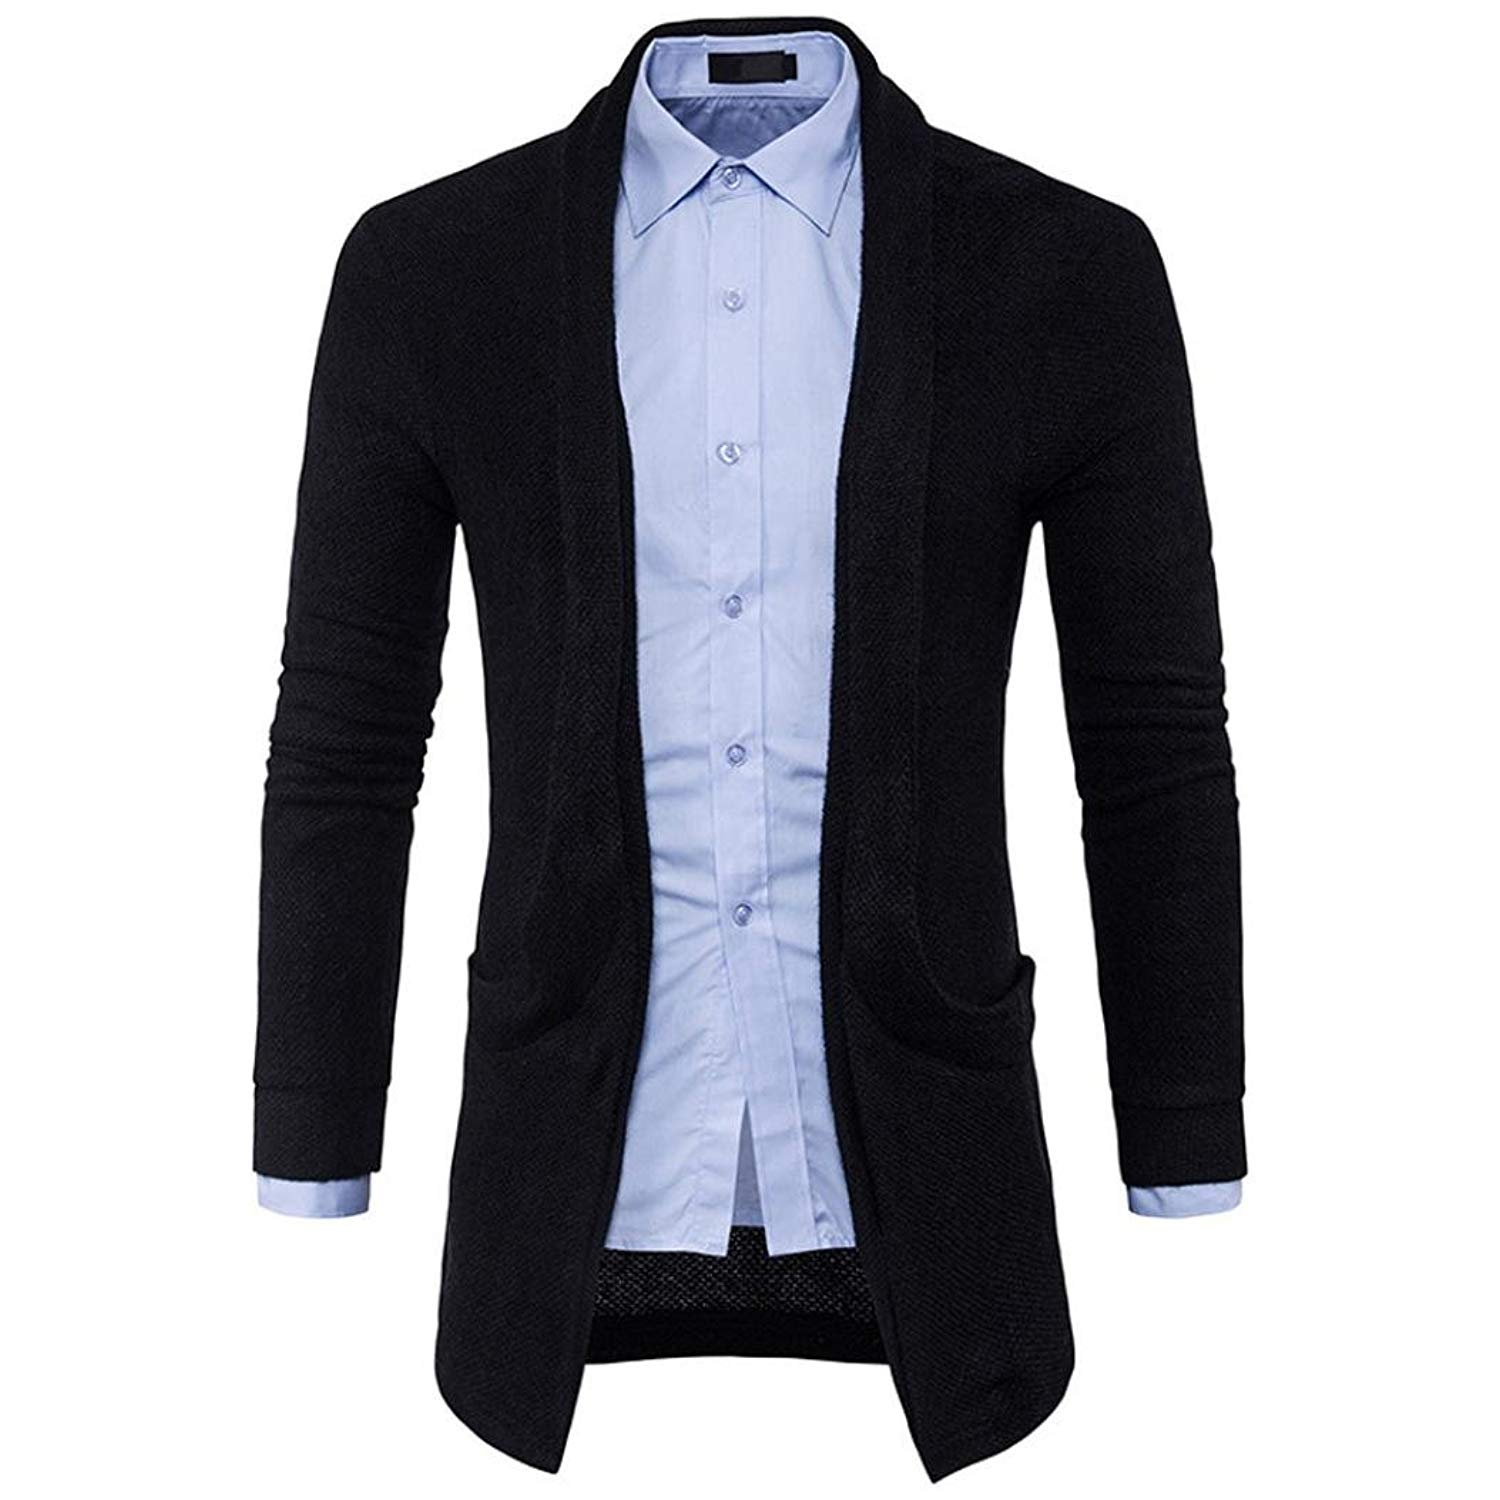 833b9f57771f2 Get Quotations · Jushye Hot Sale!!! Men's Cardigan Coat, Mens Slim Fit  Hooded Knit Sweater